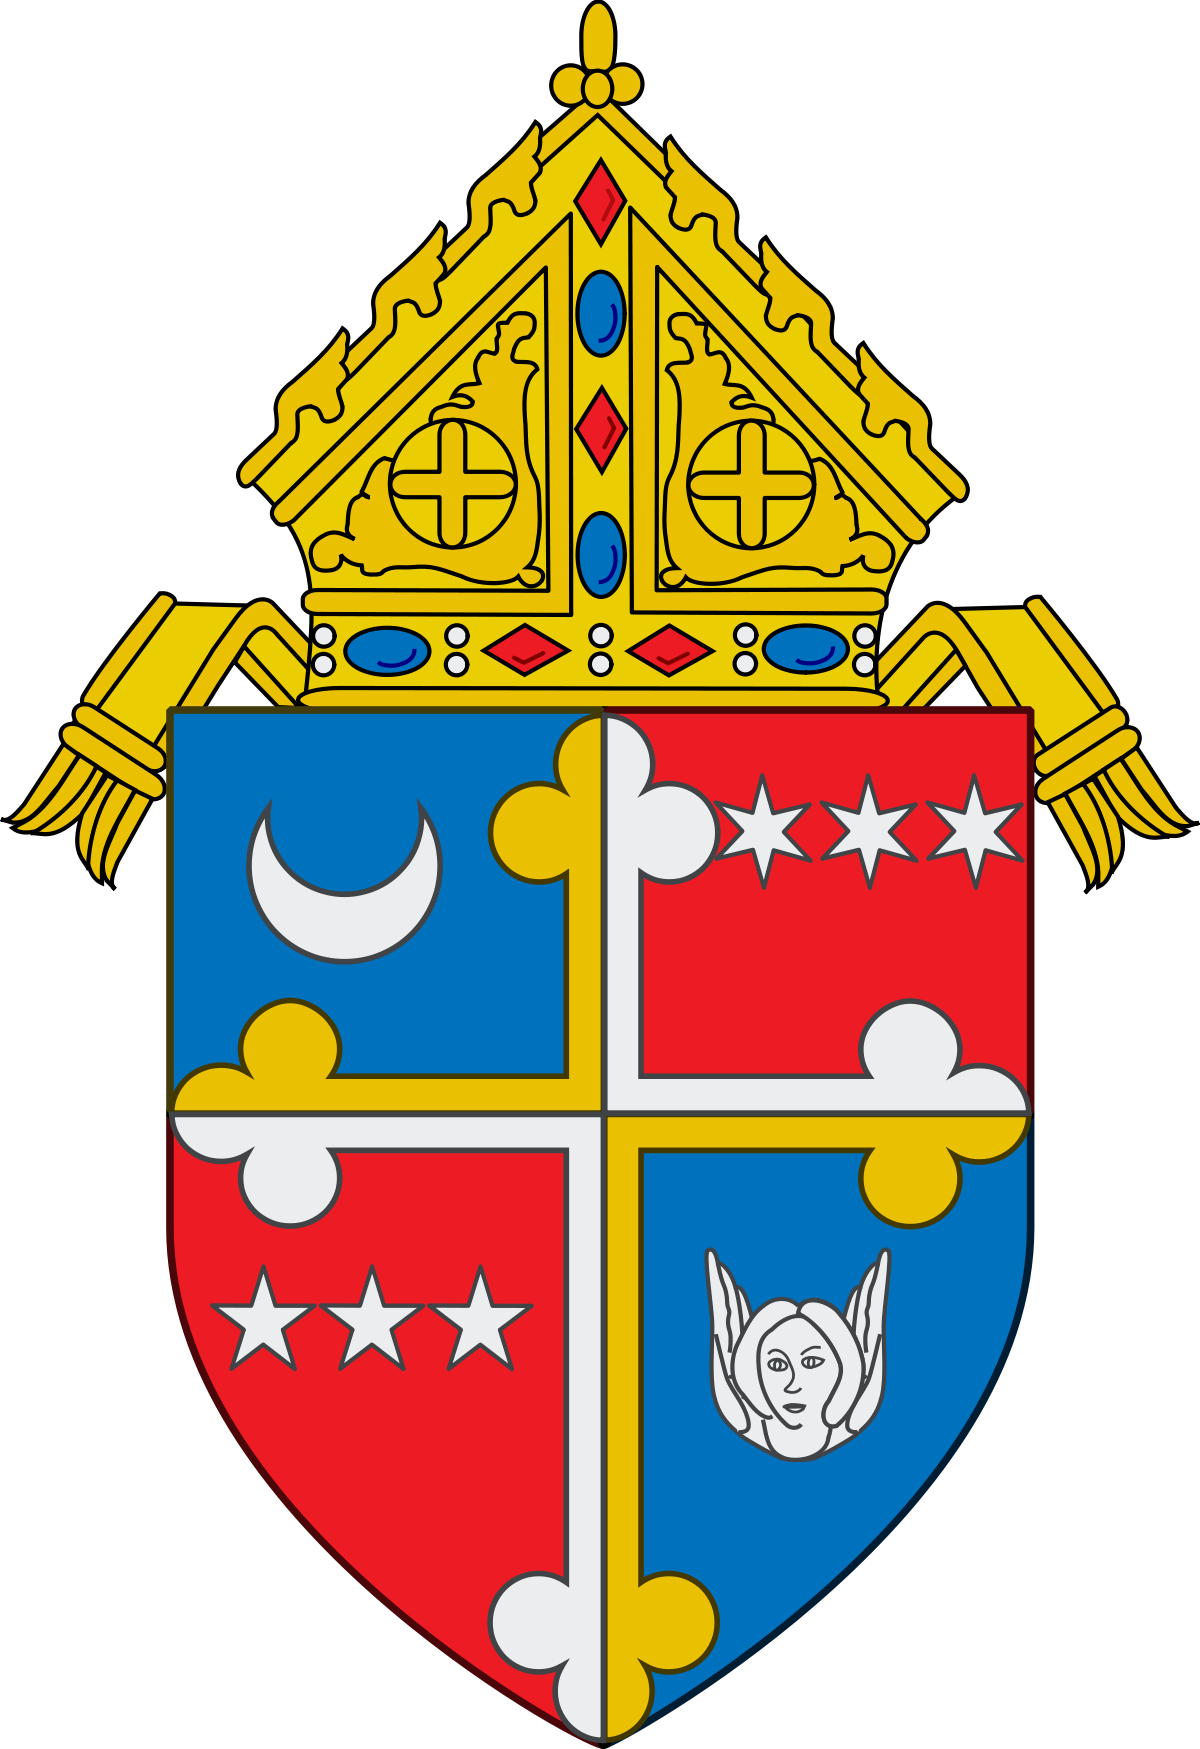 Catholic clipart archbishop. Roman archdiocese of washington